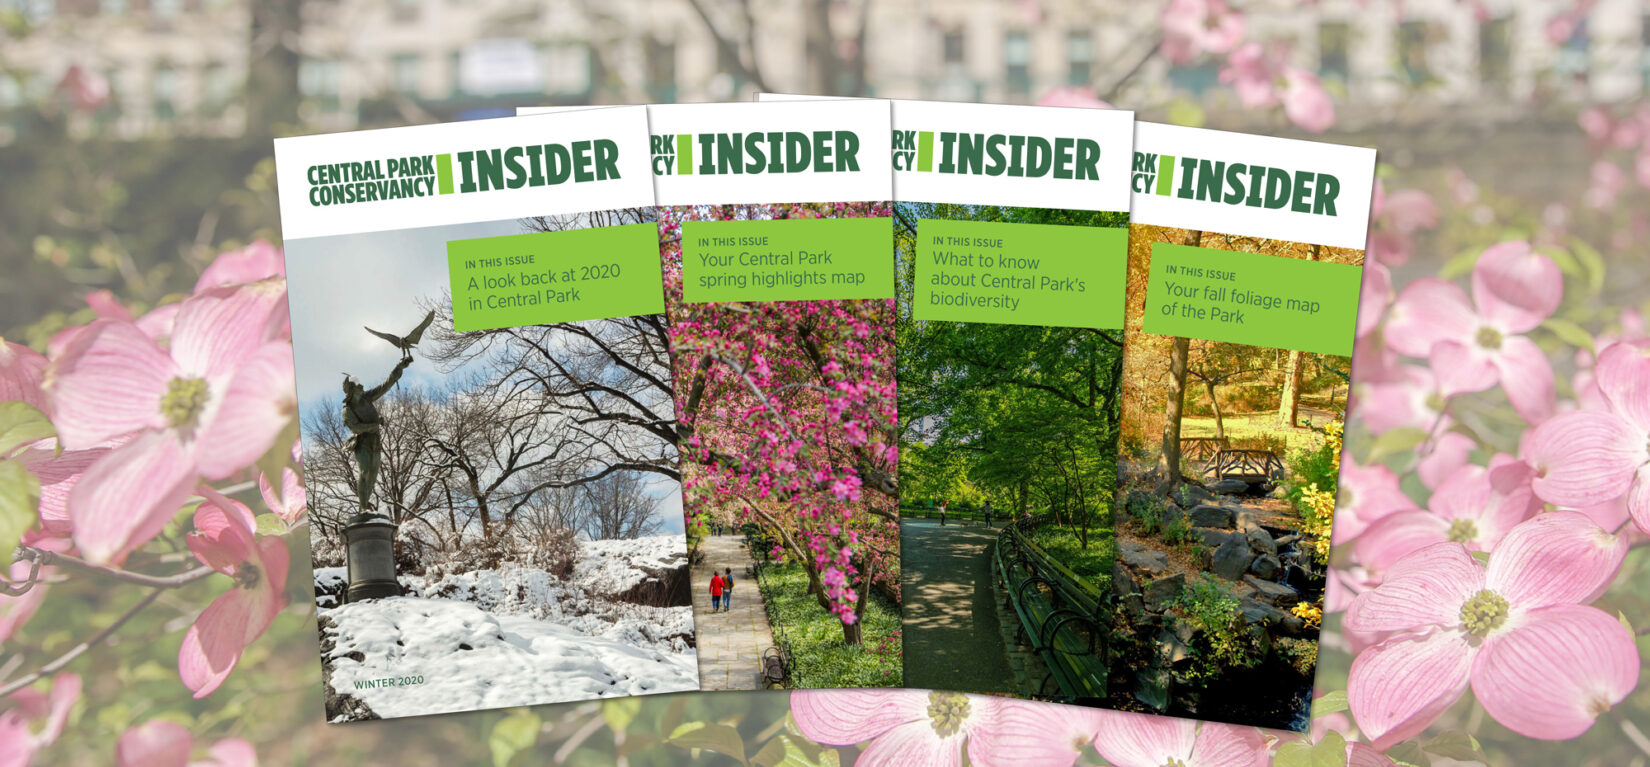 A display of past issues of the Insider, seen against a backdrop of pink flowers.